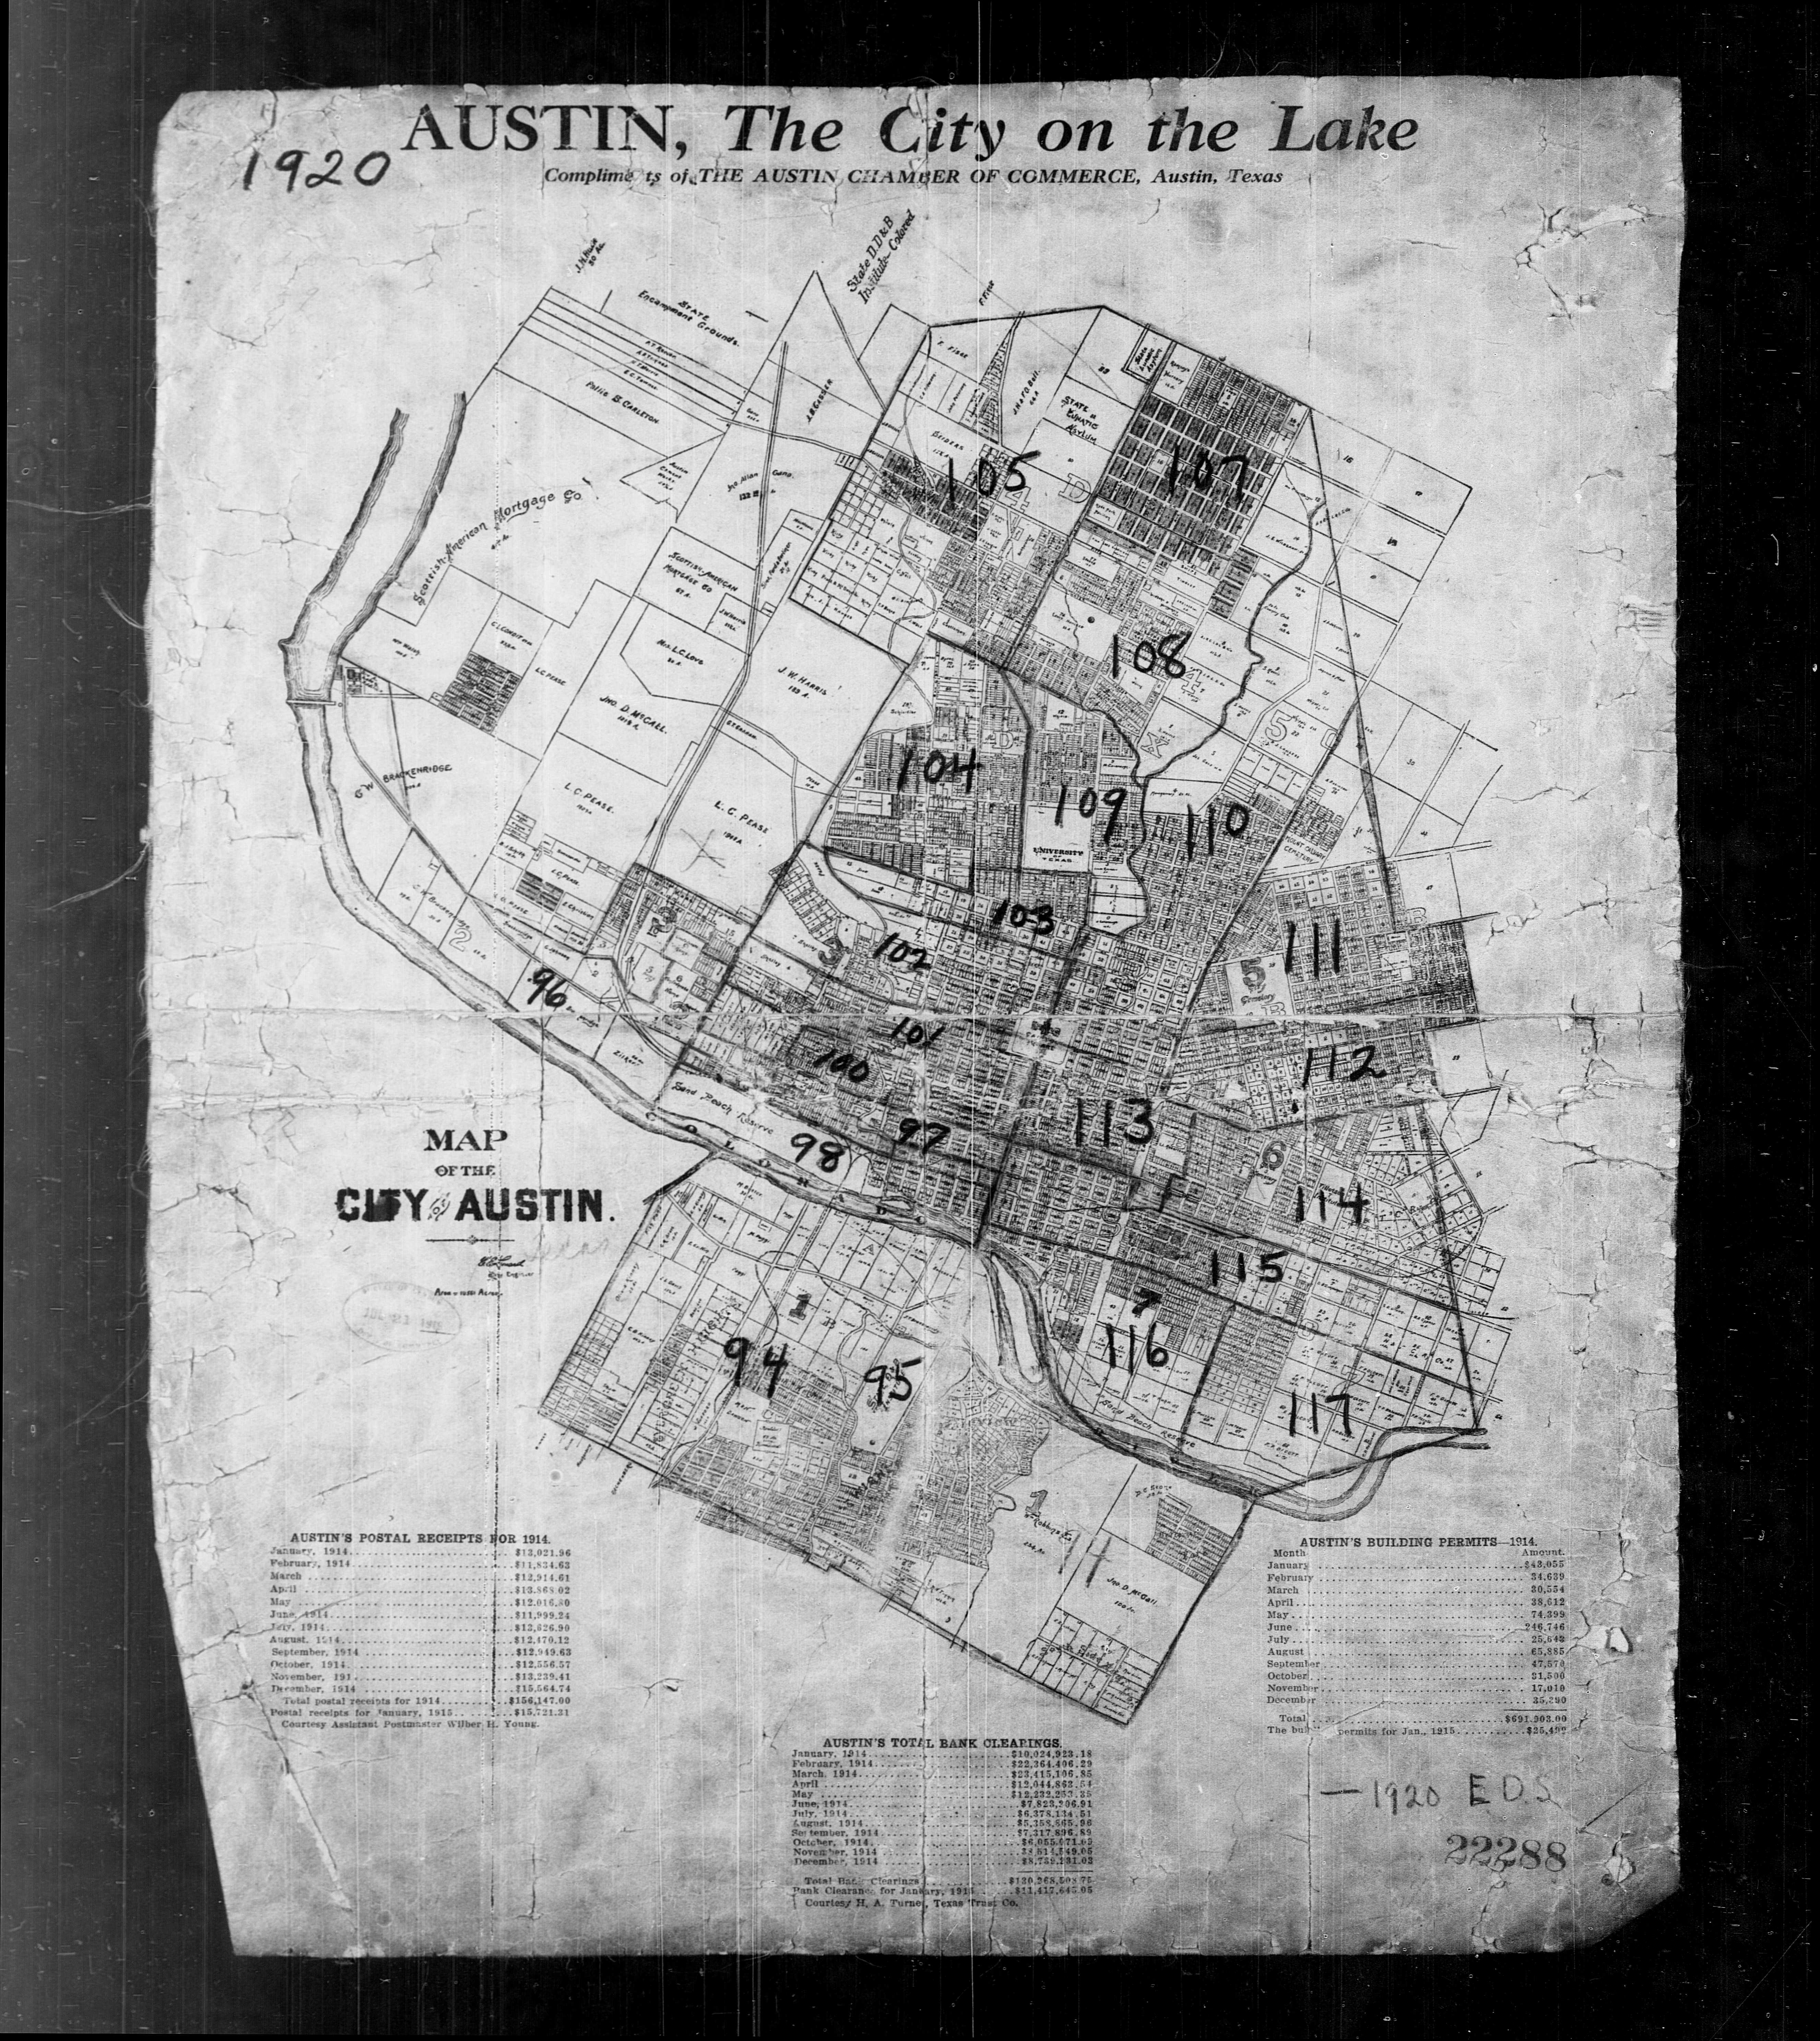 Mclennan Community College Campus Map.Texas Cities Historical Maps Perry Castaneda Map Collection Ut